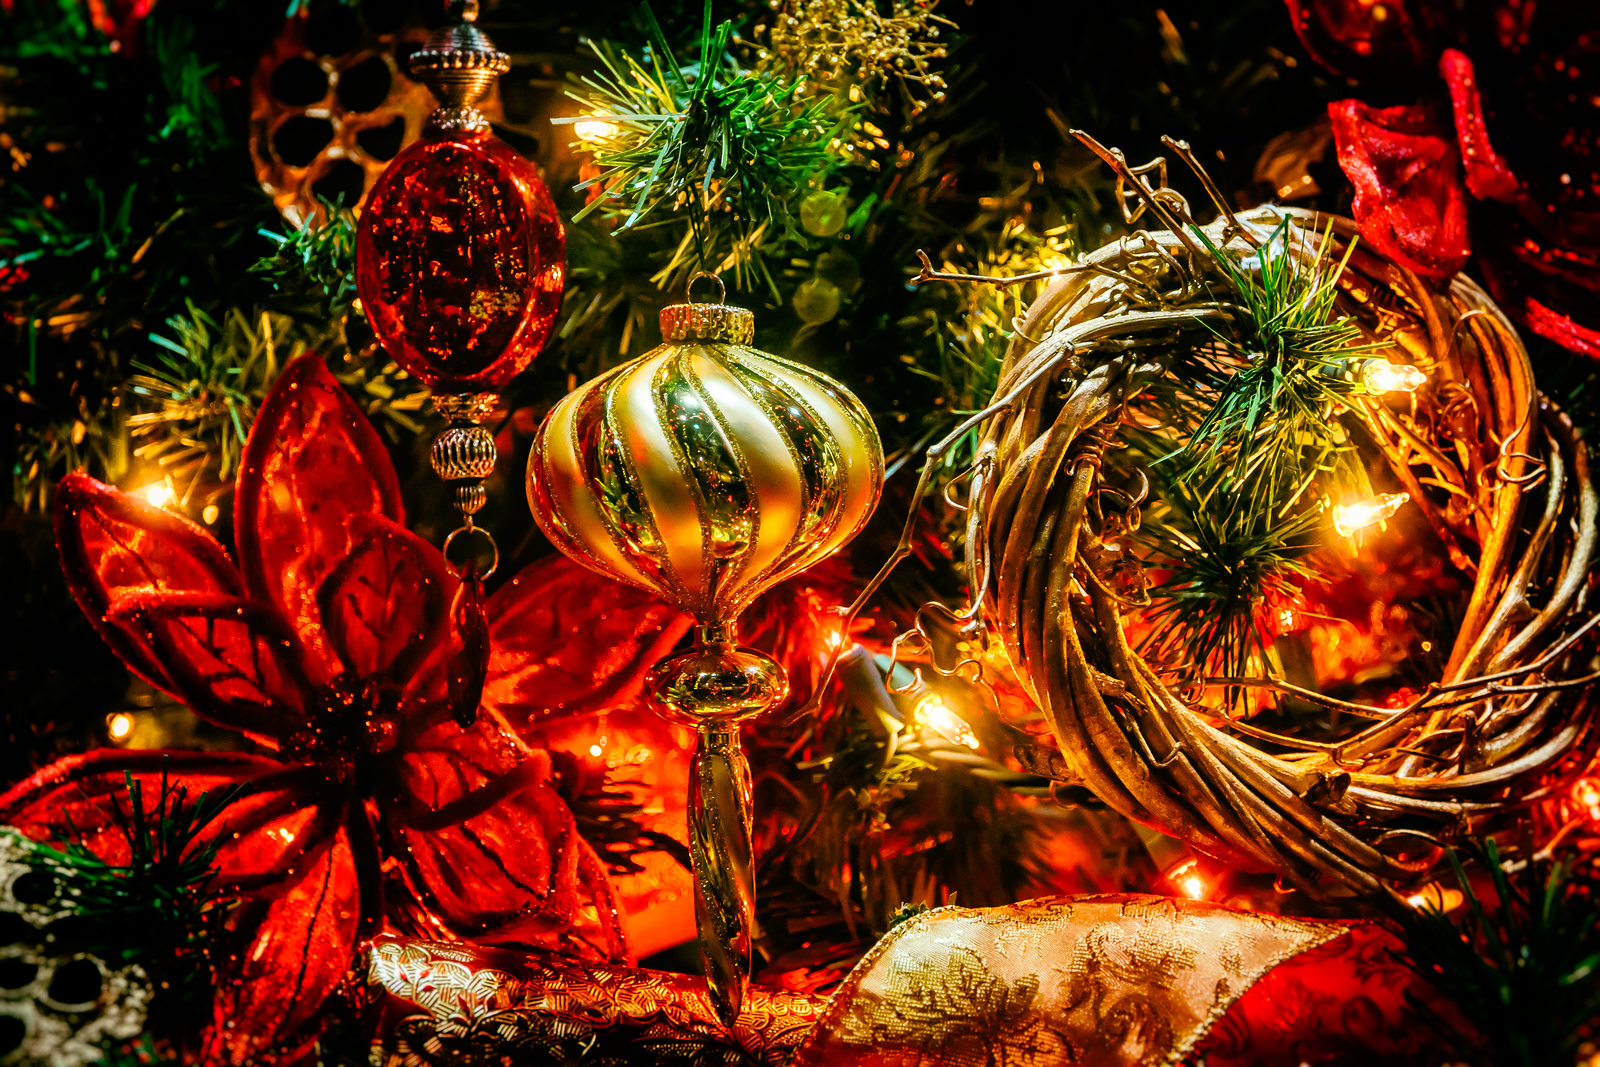 Holiday store window display photographed on December 15, 2014 in downtown Mount Vernon, Ohio.